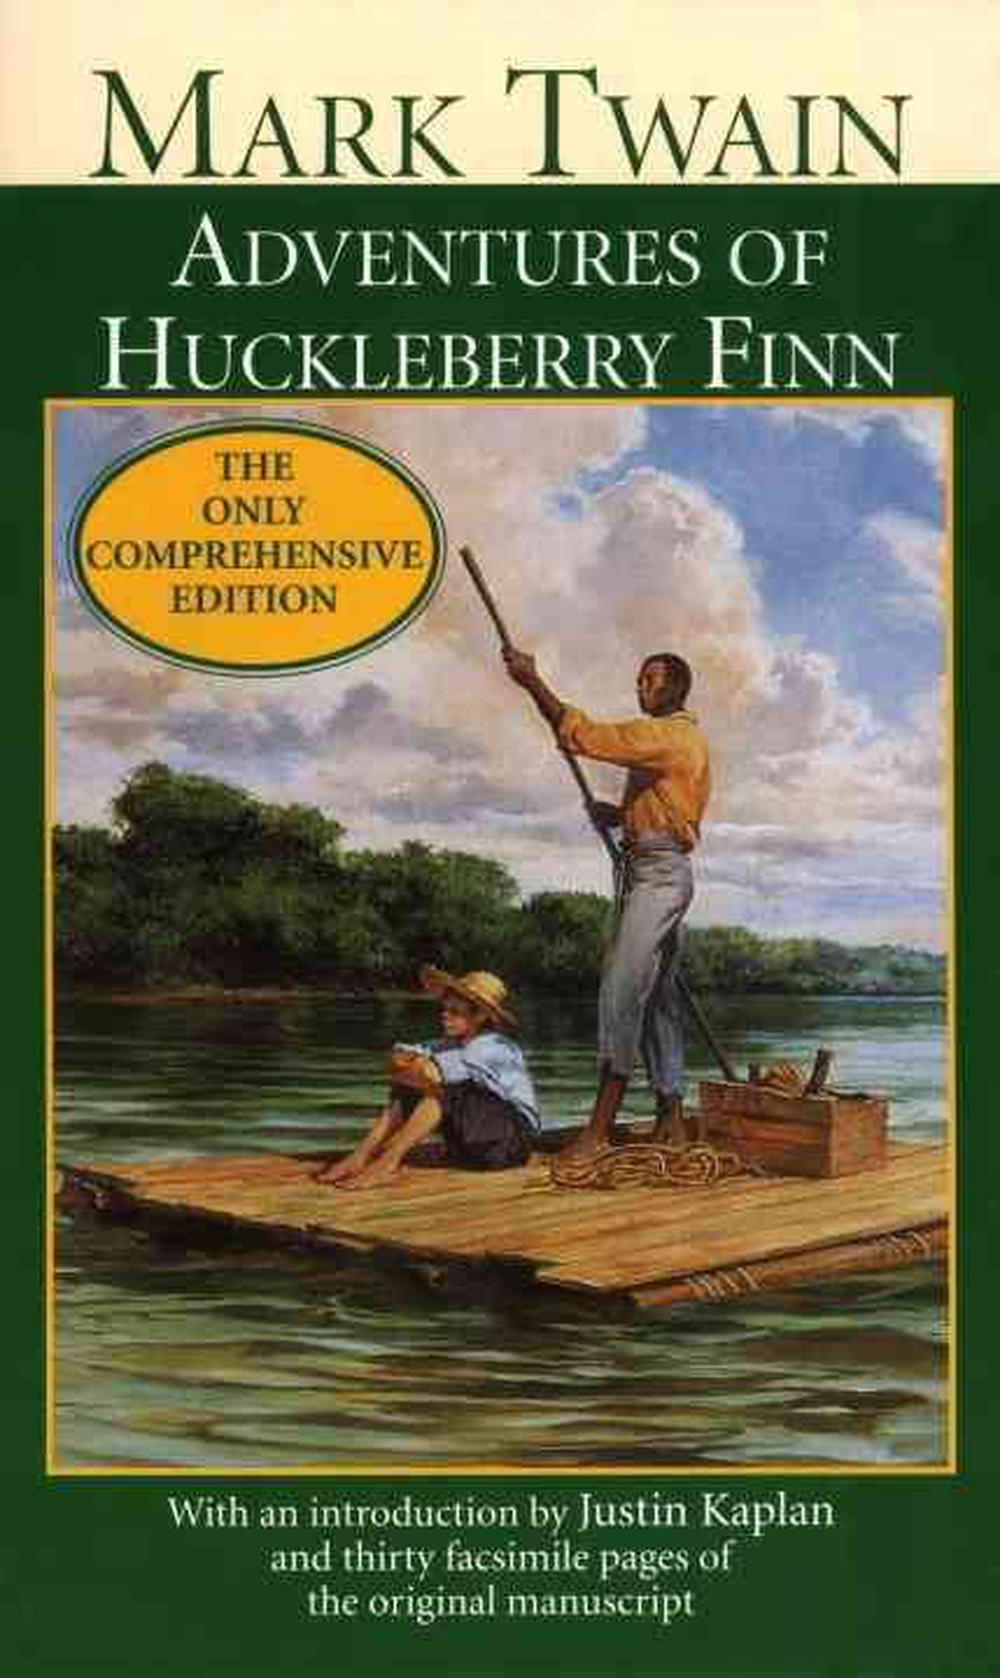 an analysis of mark twains novel the adventures of huckleberry finn When considering mark twain's attitude towards slavery, it is important to remember that twain wrote the adventures of huckleberry finn between 1876 and 1883, after the american civil war, but the setting for the novel was pre-war.